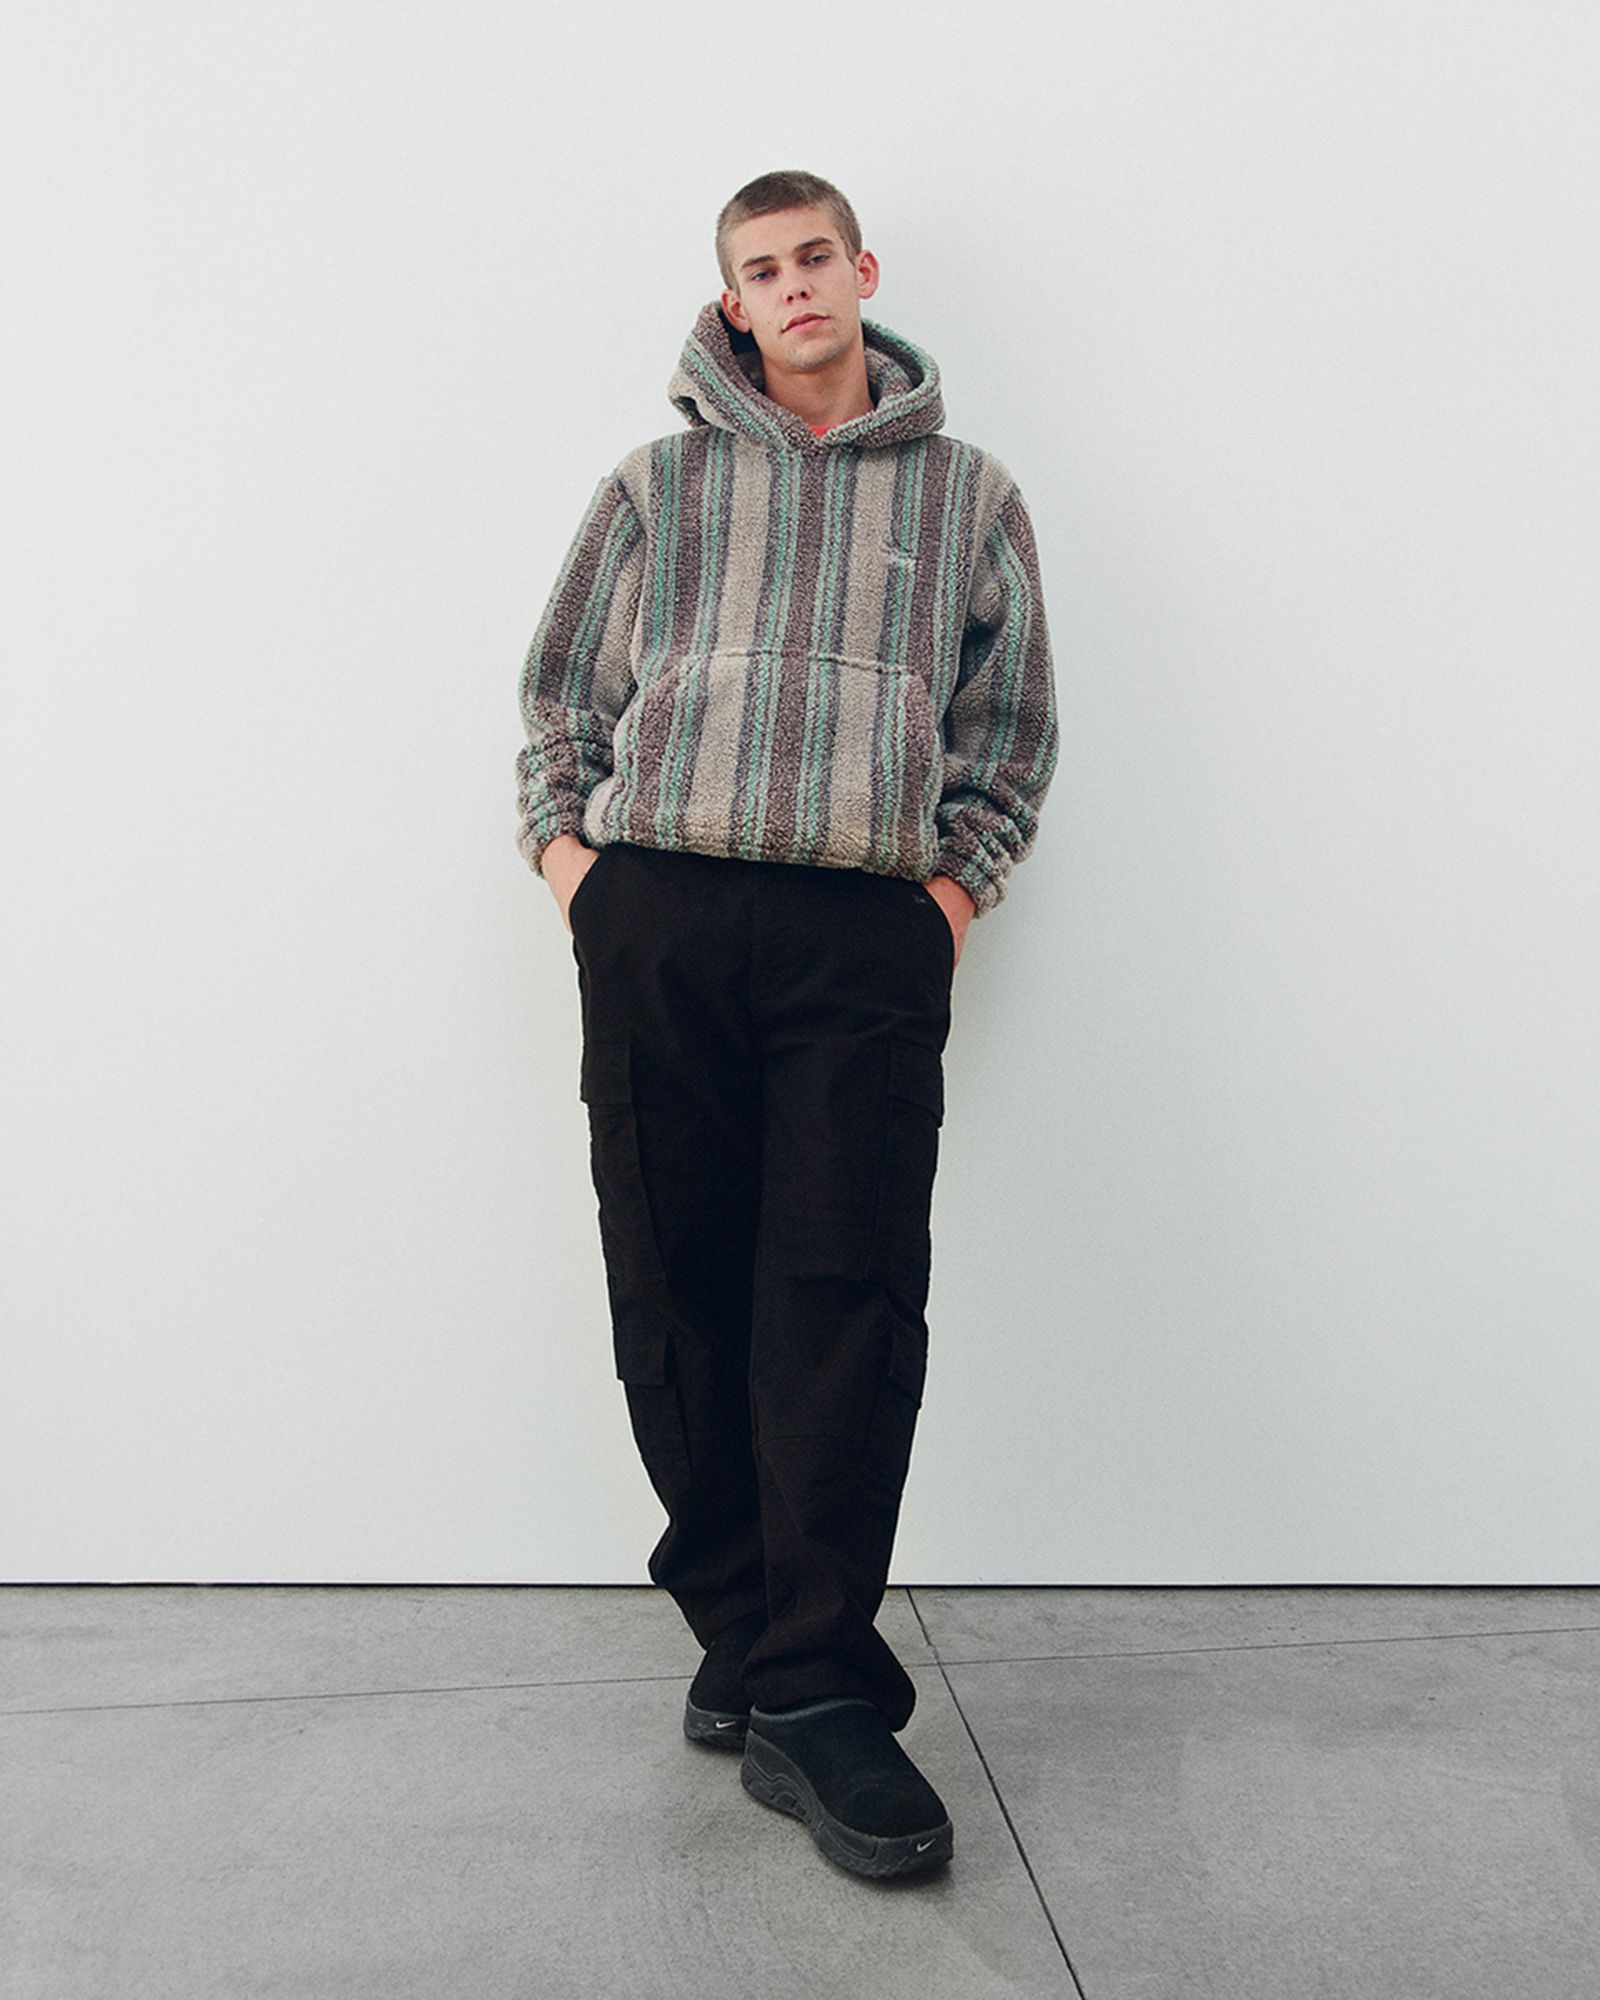 Stussy fall 2021 collection lookbook (10)